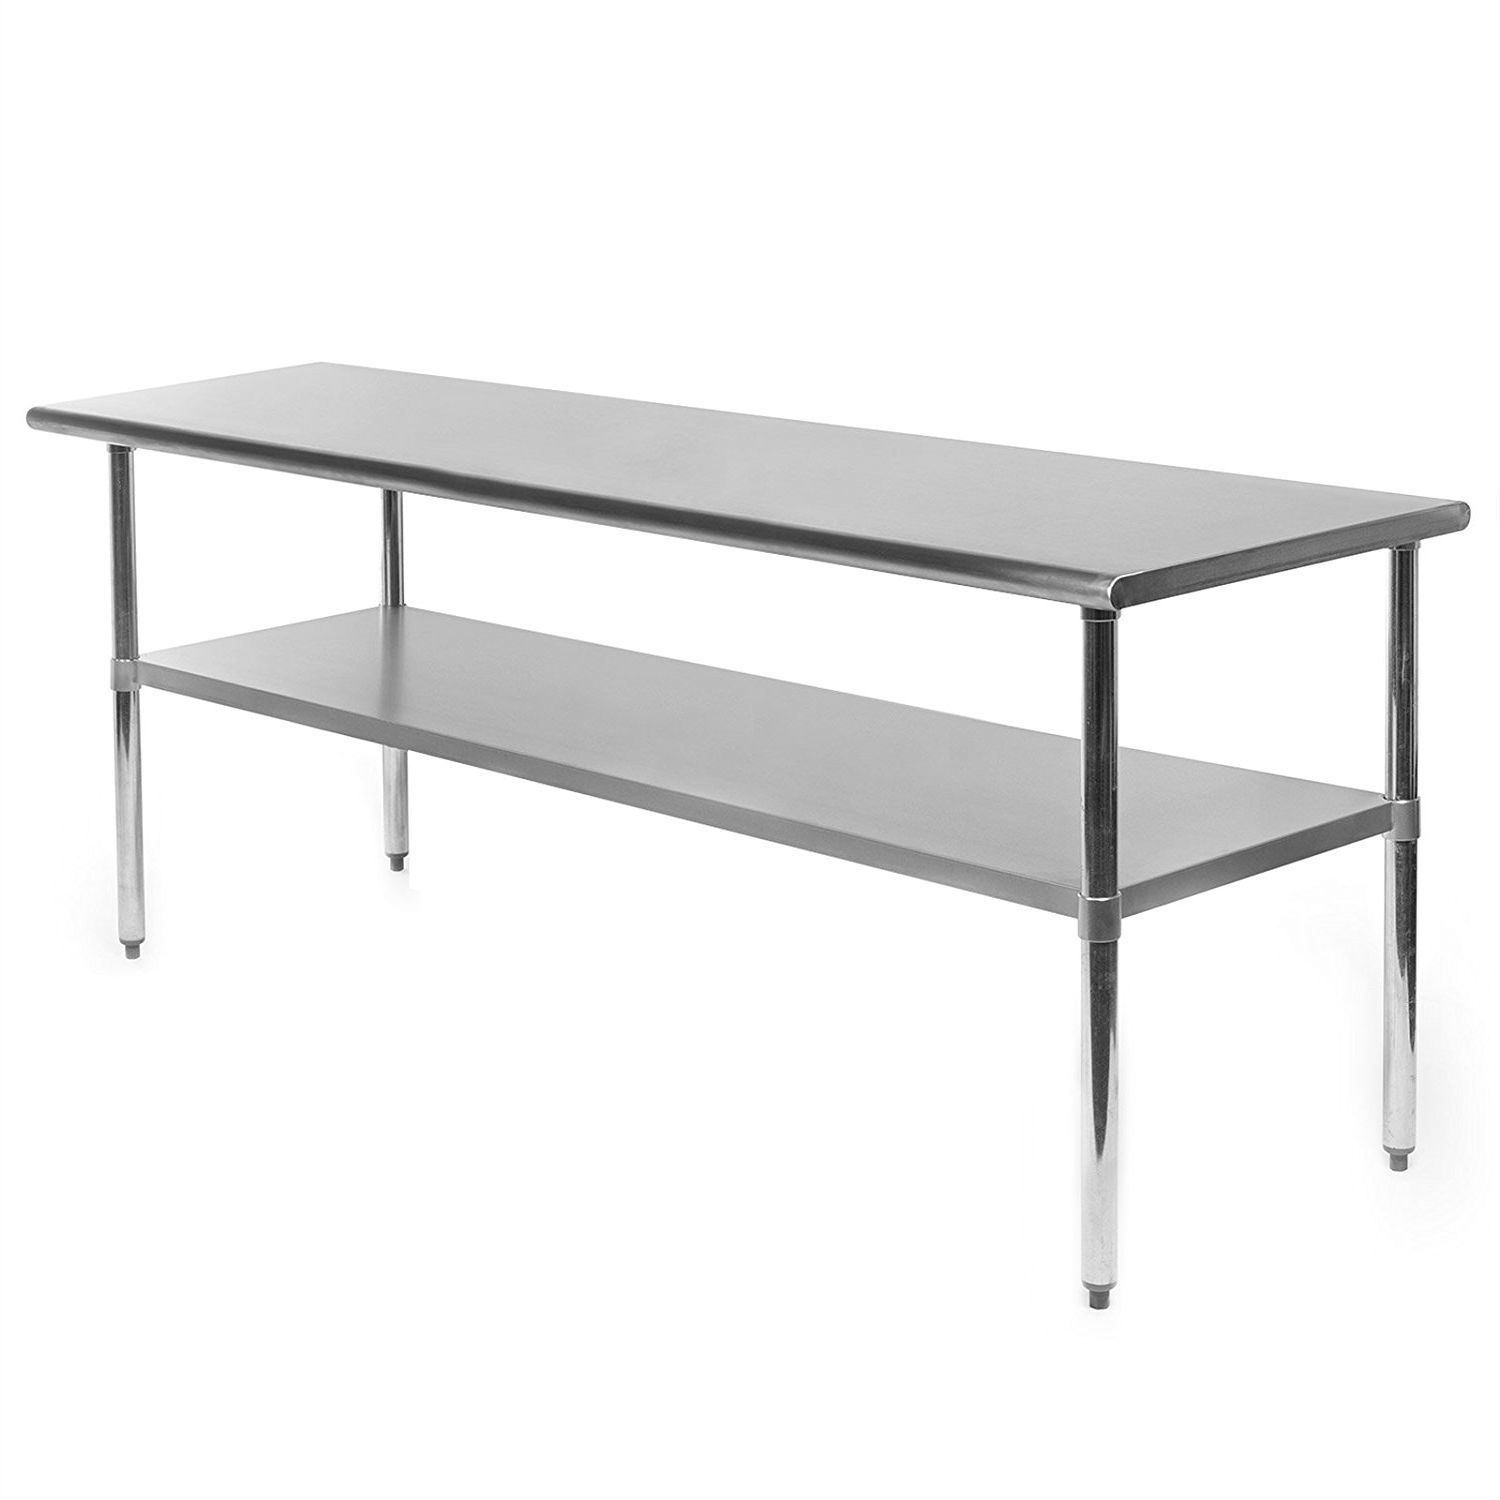 heavy duty 72 x 24 inch stainless steel kitchen restaurant prep work table. beautiful ideas. Home Design Ideas